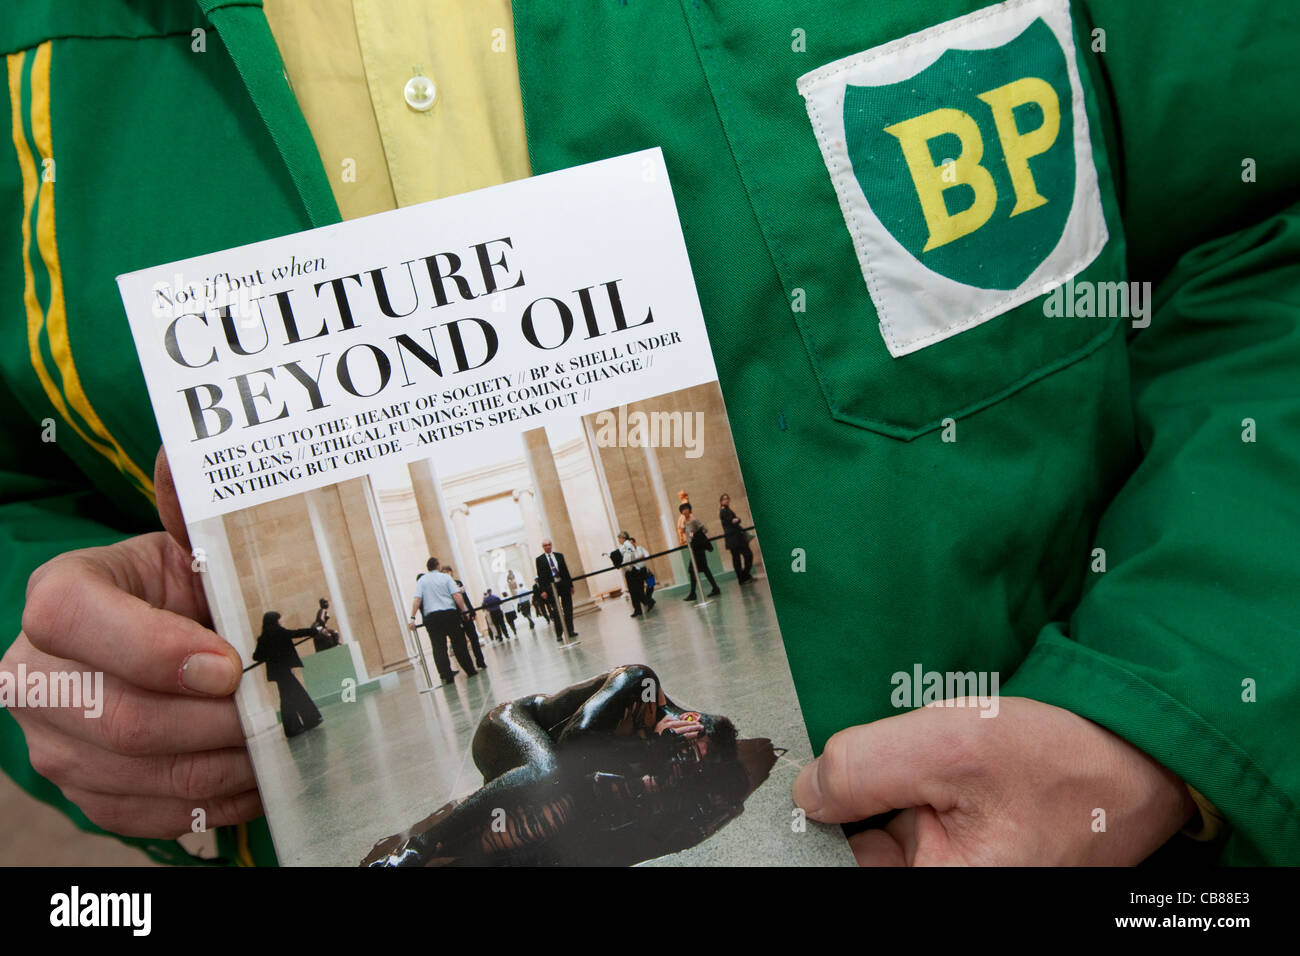 Culture Beyond Oil: publication about opposition to arts sponsorship by oil companies like BP - Stock Image